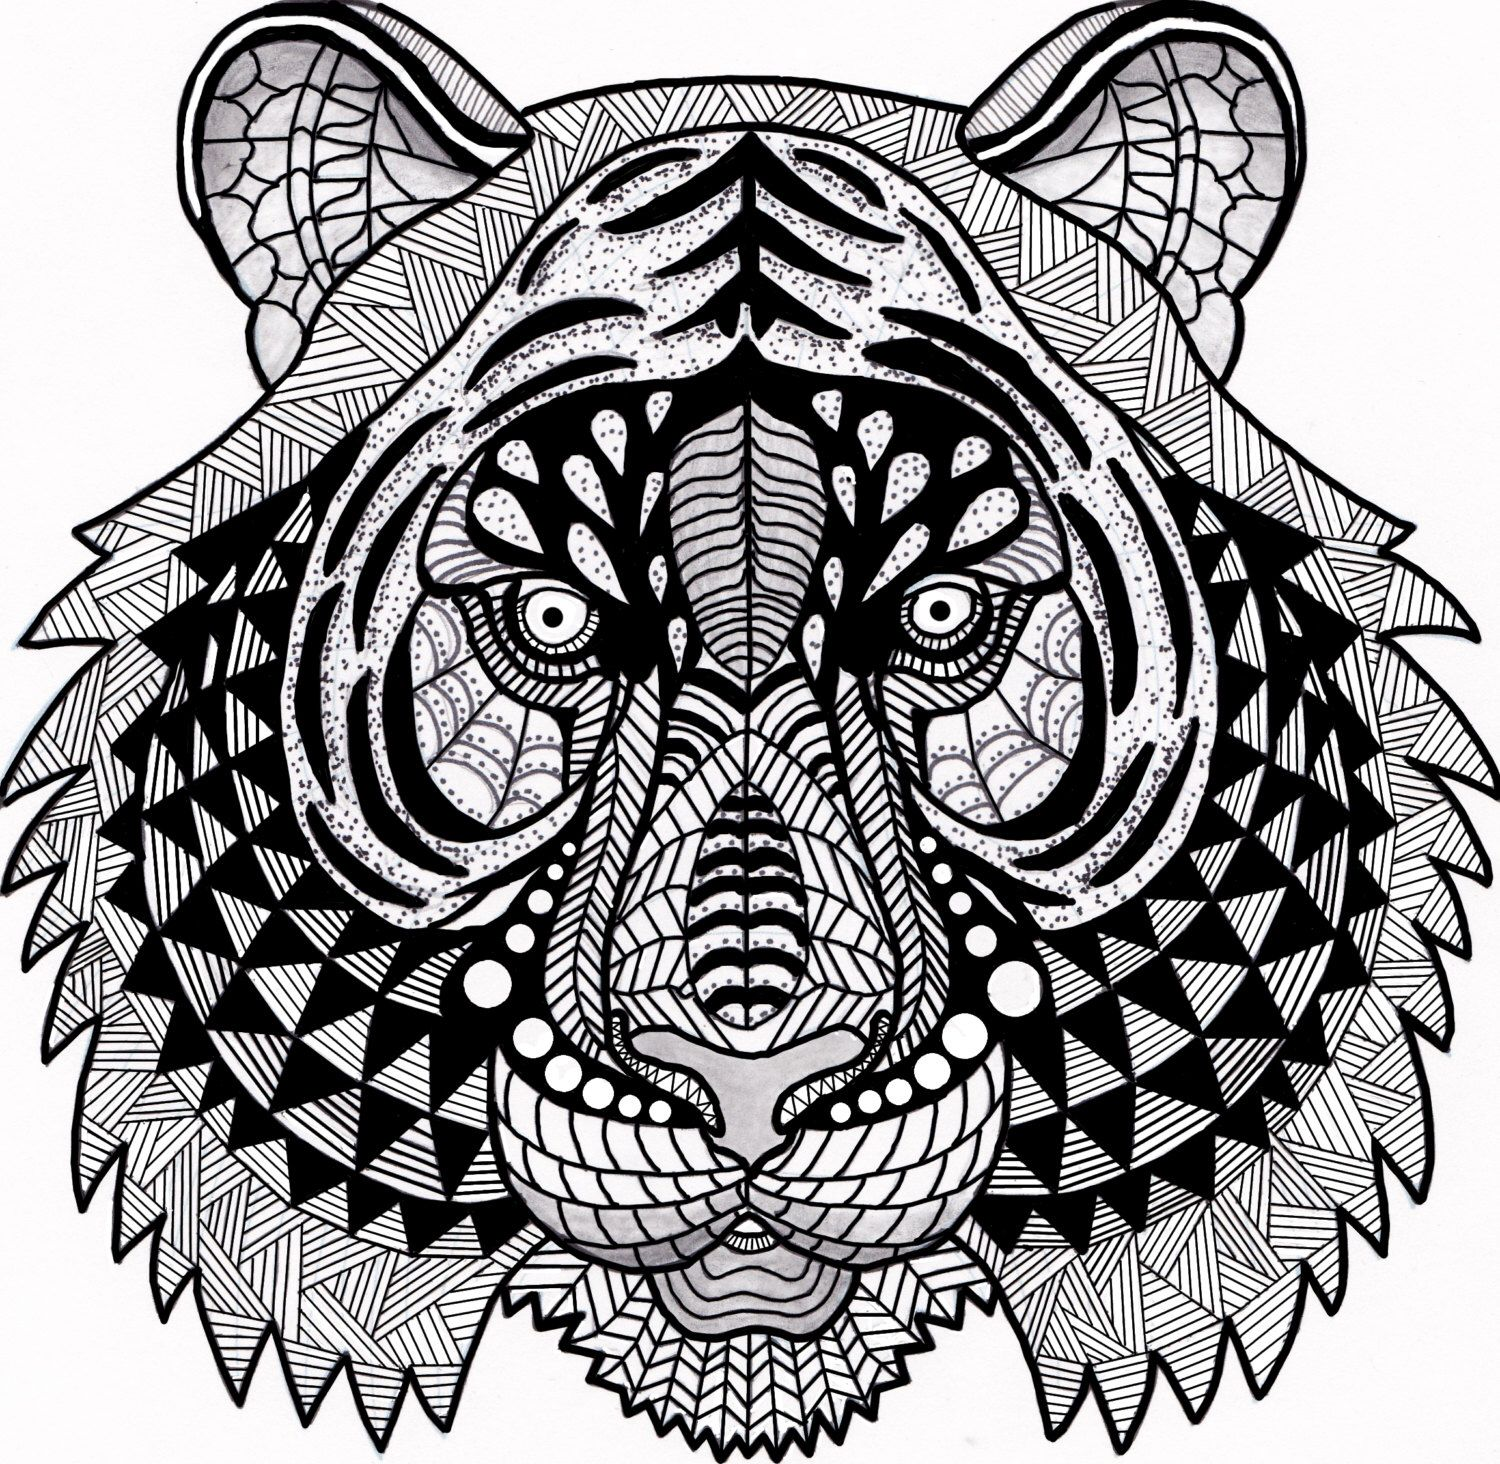 Tiger Zentangle Coloring Page By Inspirationbyvicki On Etsy Https